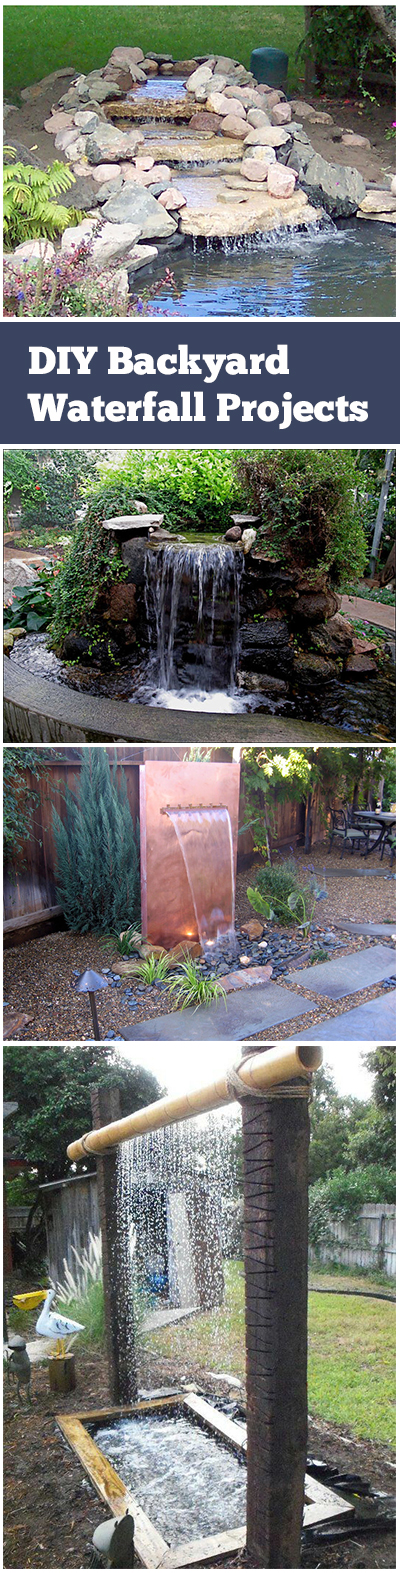 Backyard water fall, waterfall projects, easy waterfall projects, DIY waterfall, popular pin, outdoor living, DIY outdoor projects, outdoor entertainment, landscaping.